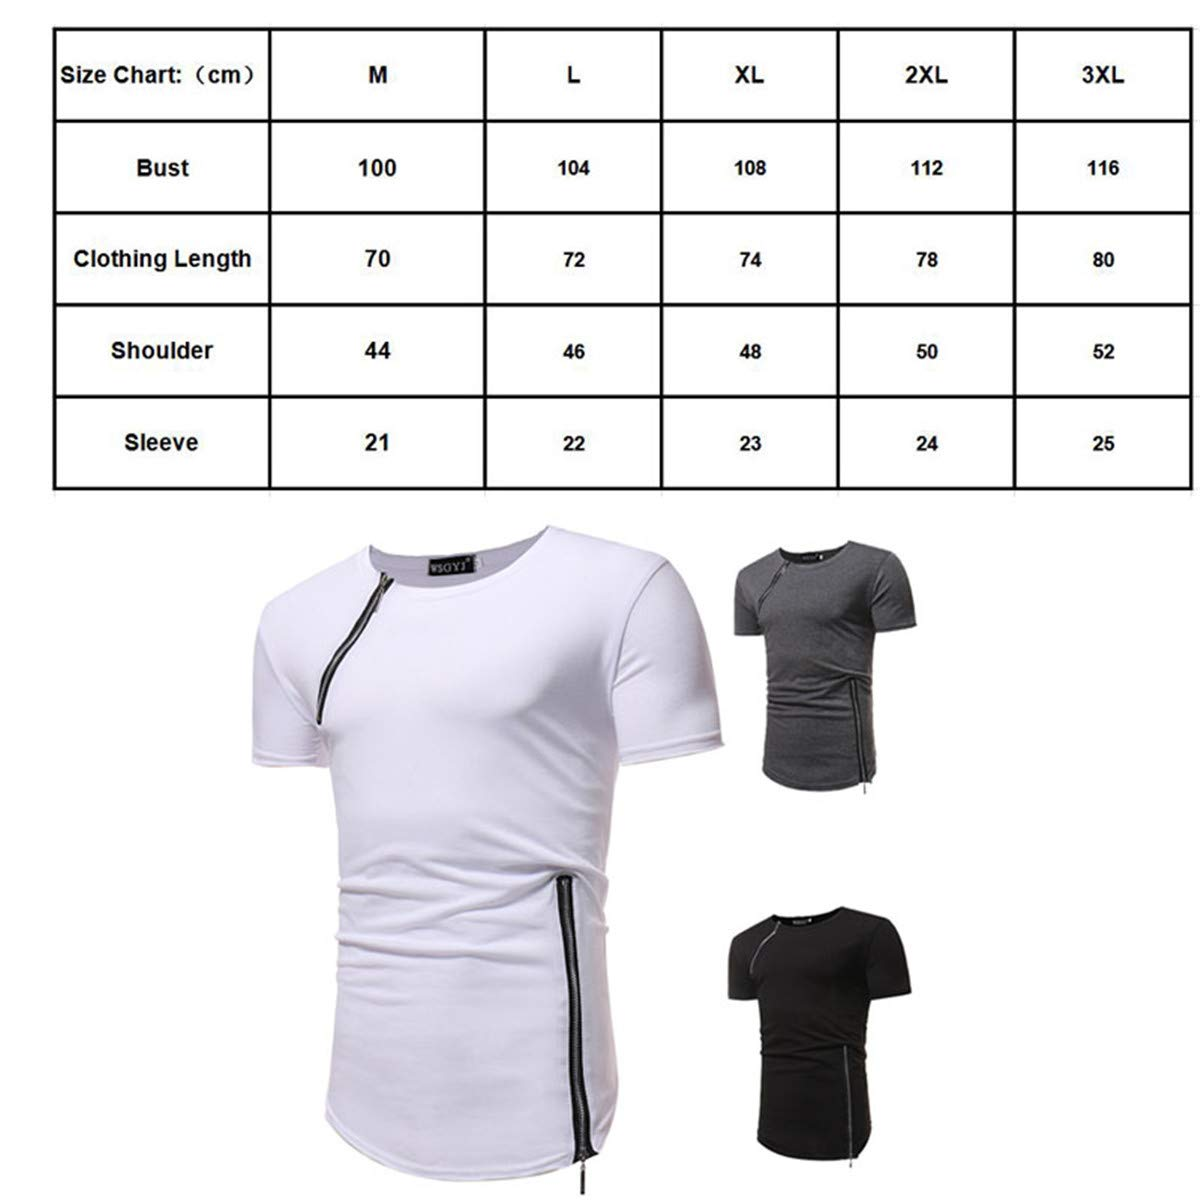 etst Solid Color Round Neck Personality Zipper Stitching Short-Sleeved t-Shirt Male Black 5 Size